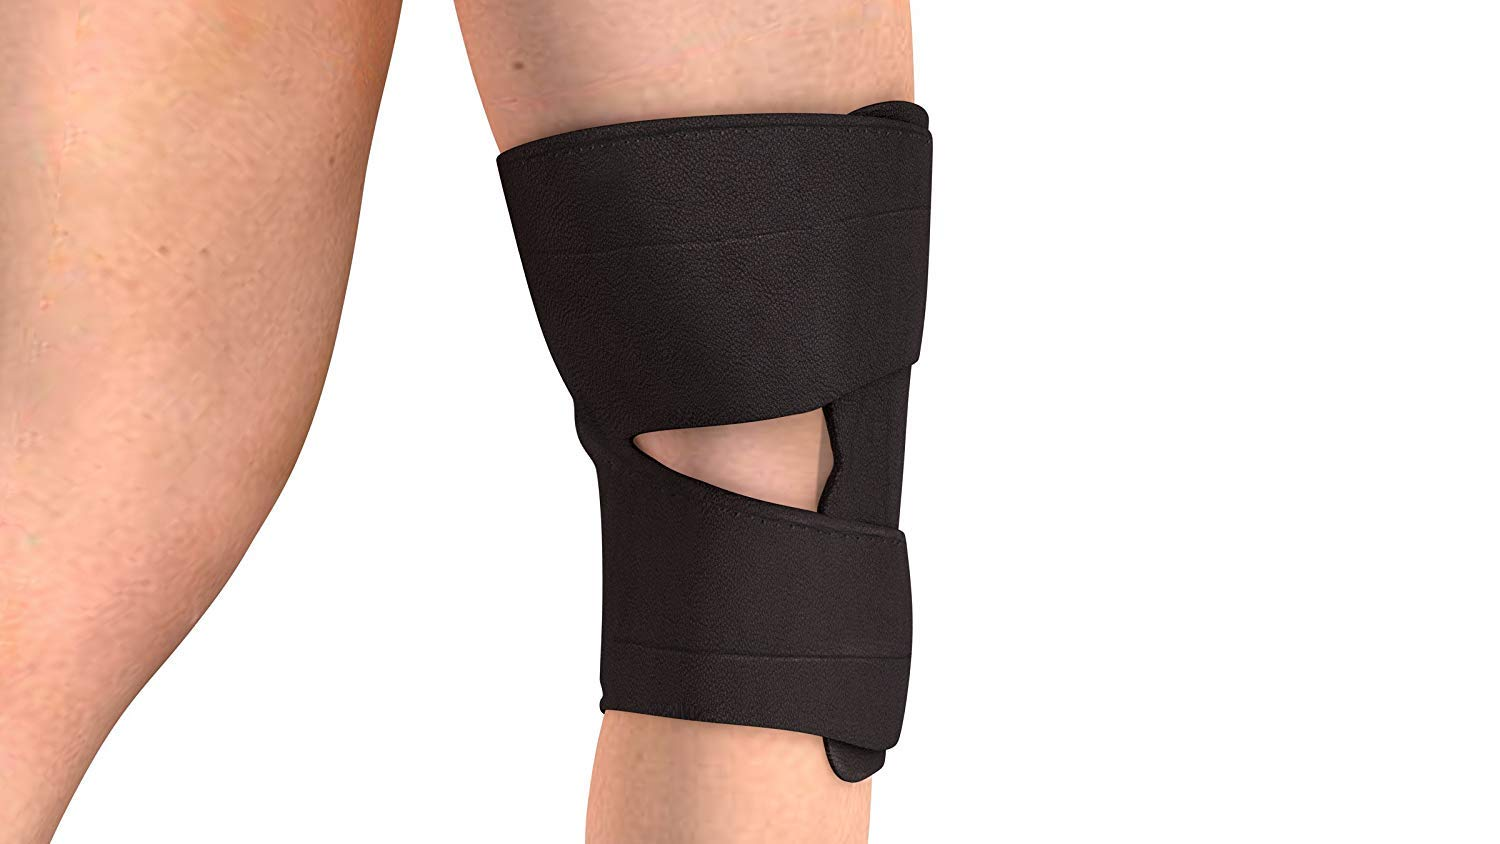 972cf32207 Knee Brace support by Pegasus- For Running Basketball Arthritis ACL MCL  rehab TOP QUALITY BREATHABLE non Bulky Neoprene. Best Open Patella Knee  Protector ...